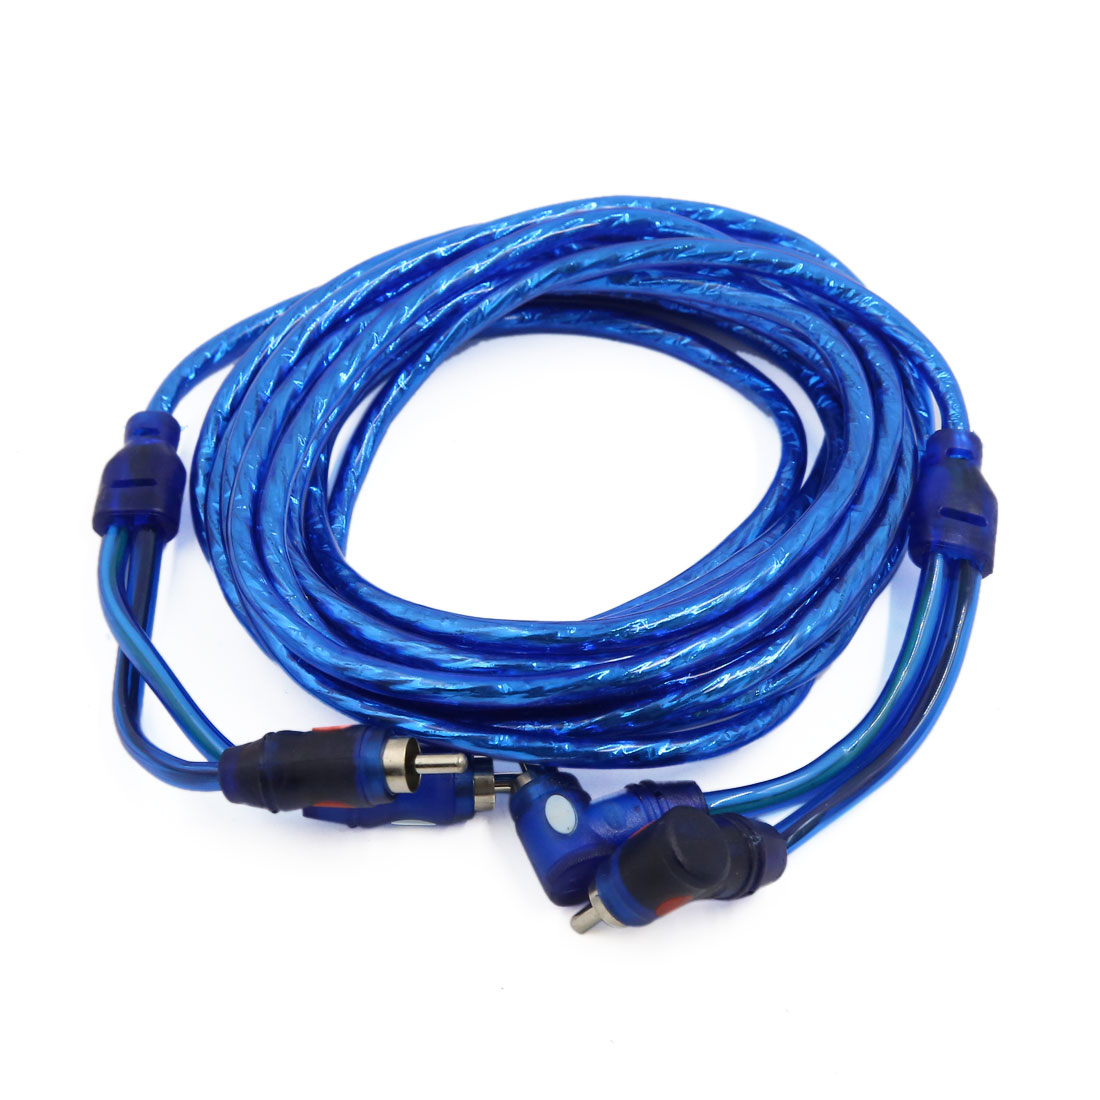 4.5 Meters RCA Right Angle Male to Straight Male Plug Audio Cable